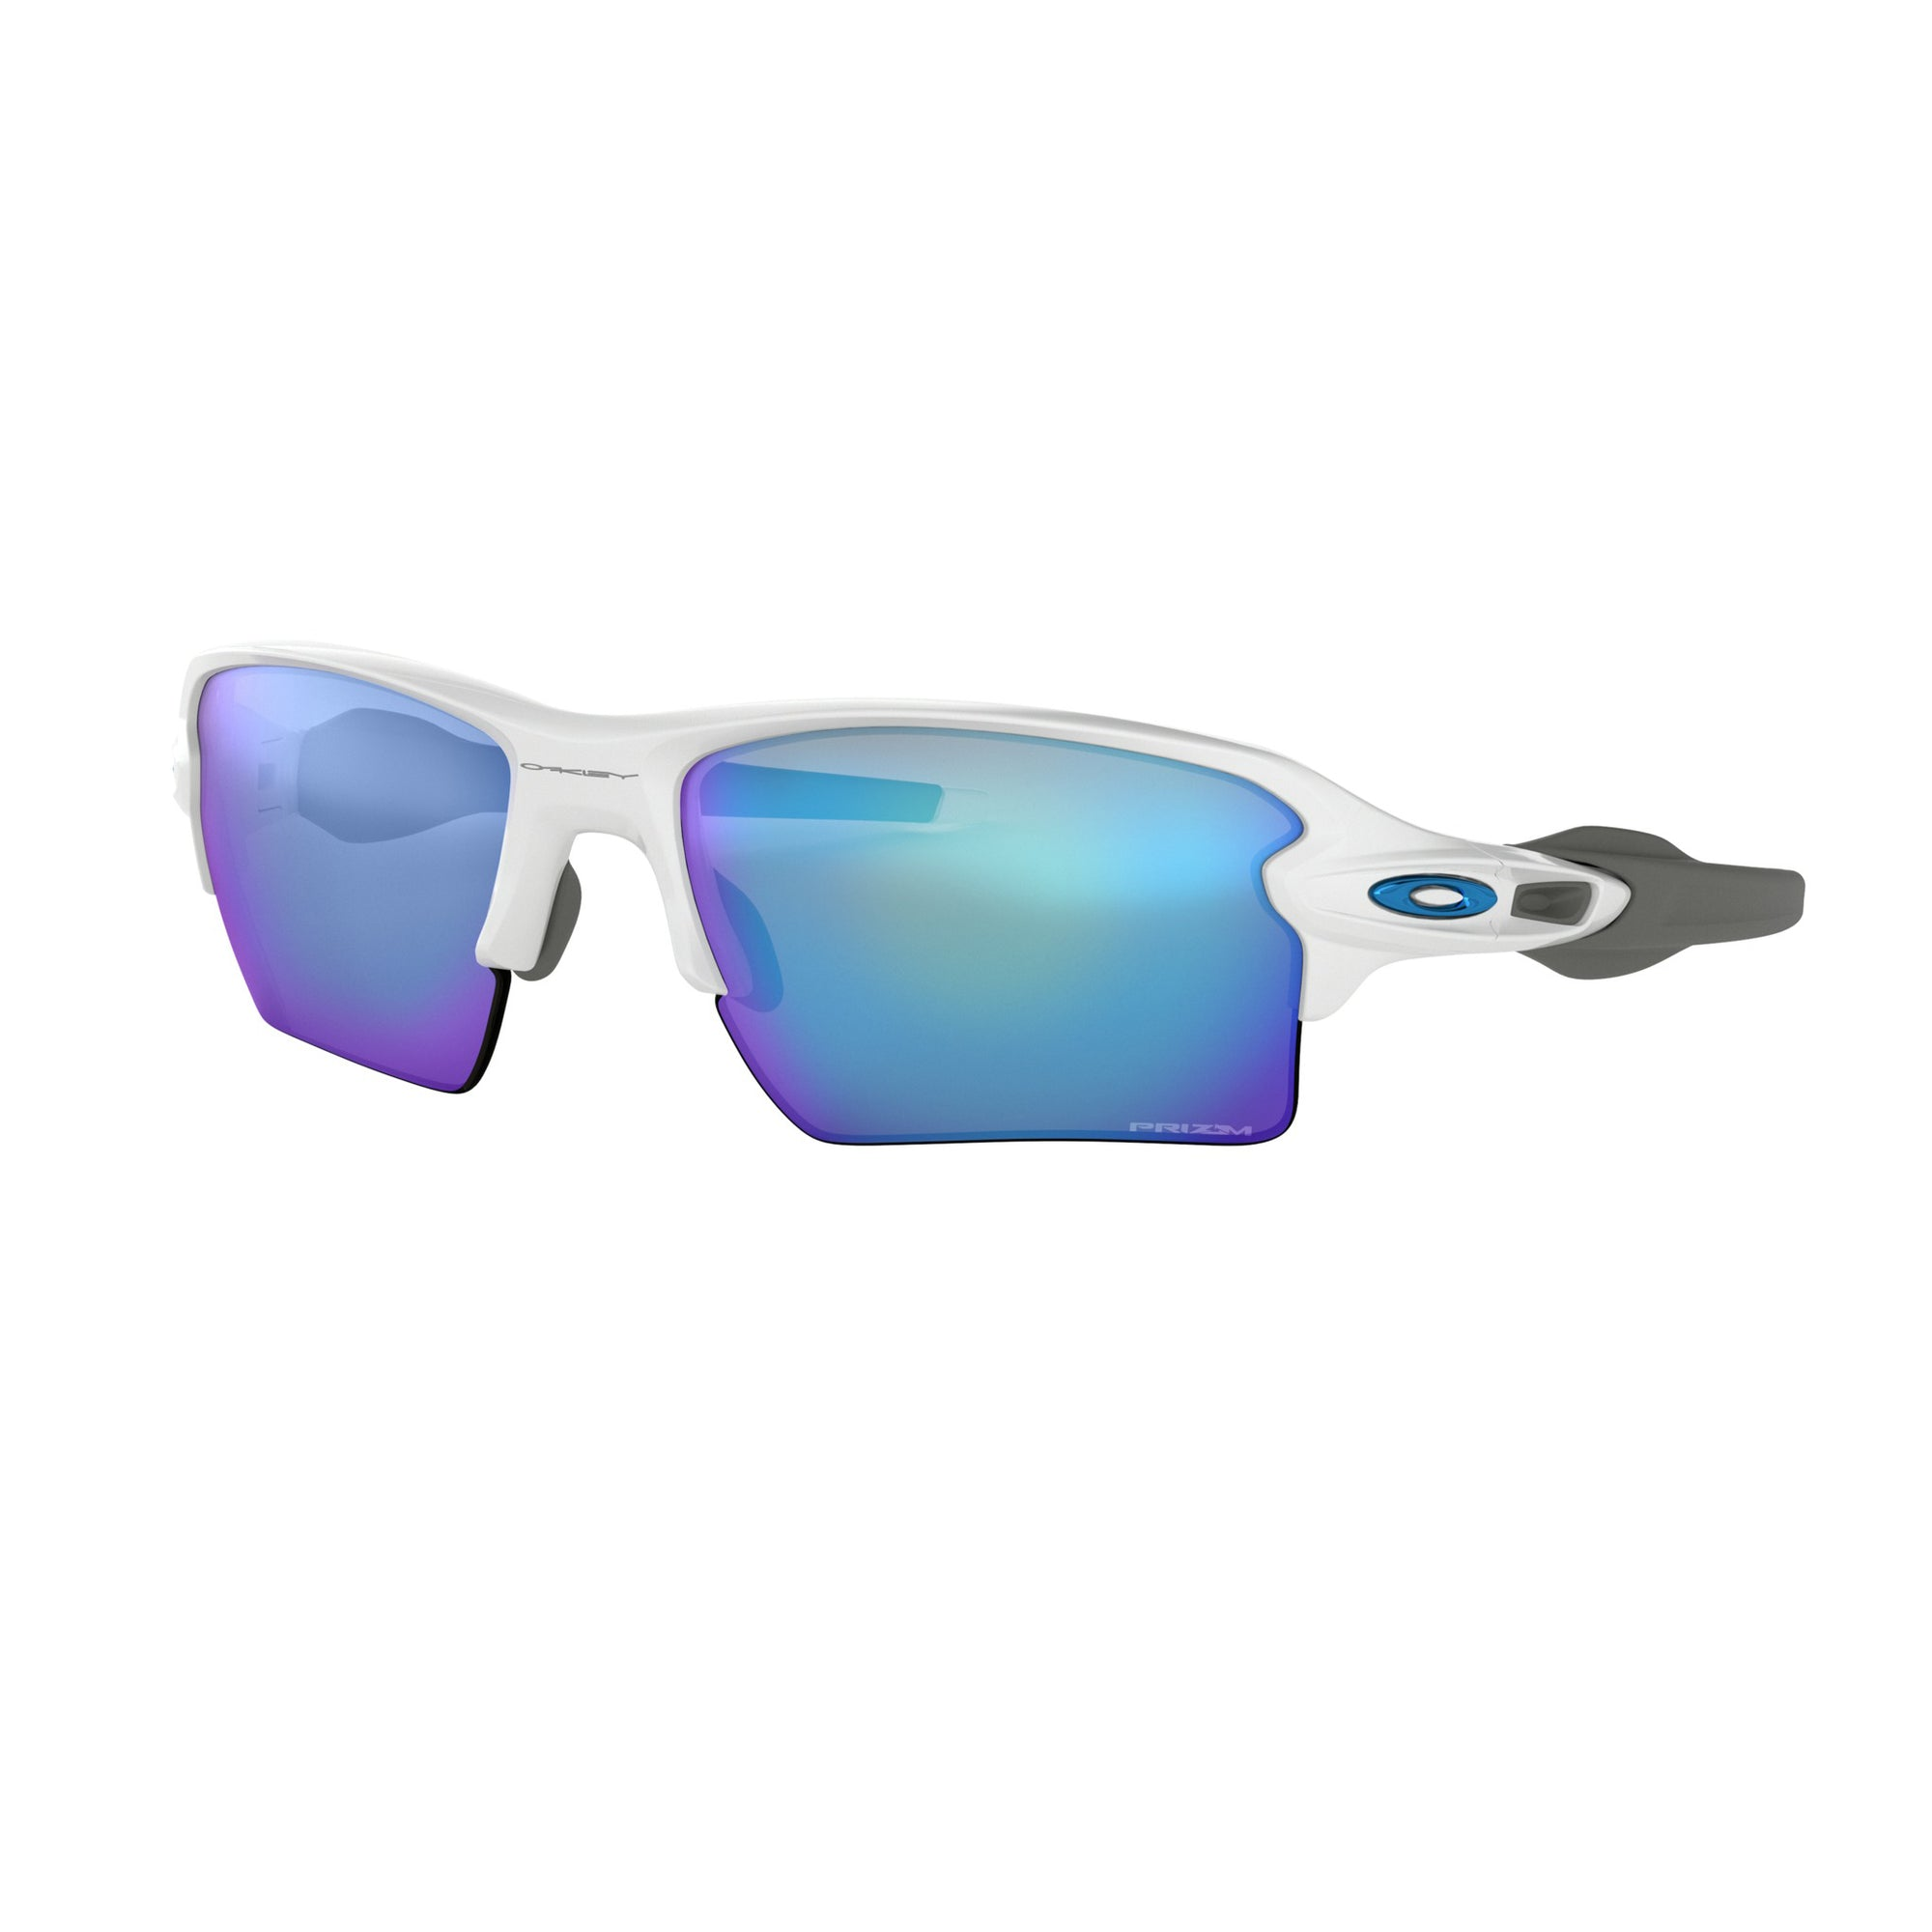 Oakley Flak 2.0 XL Men's Sunglasses - Polished White/Prizm Sapphire